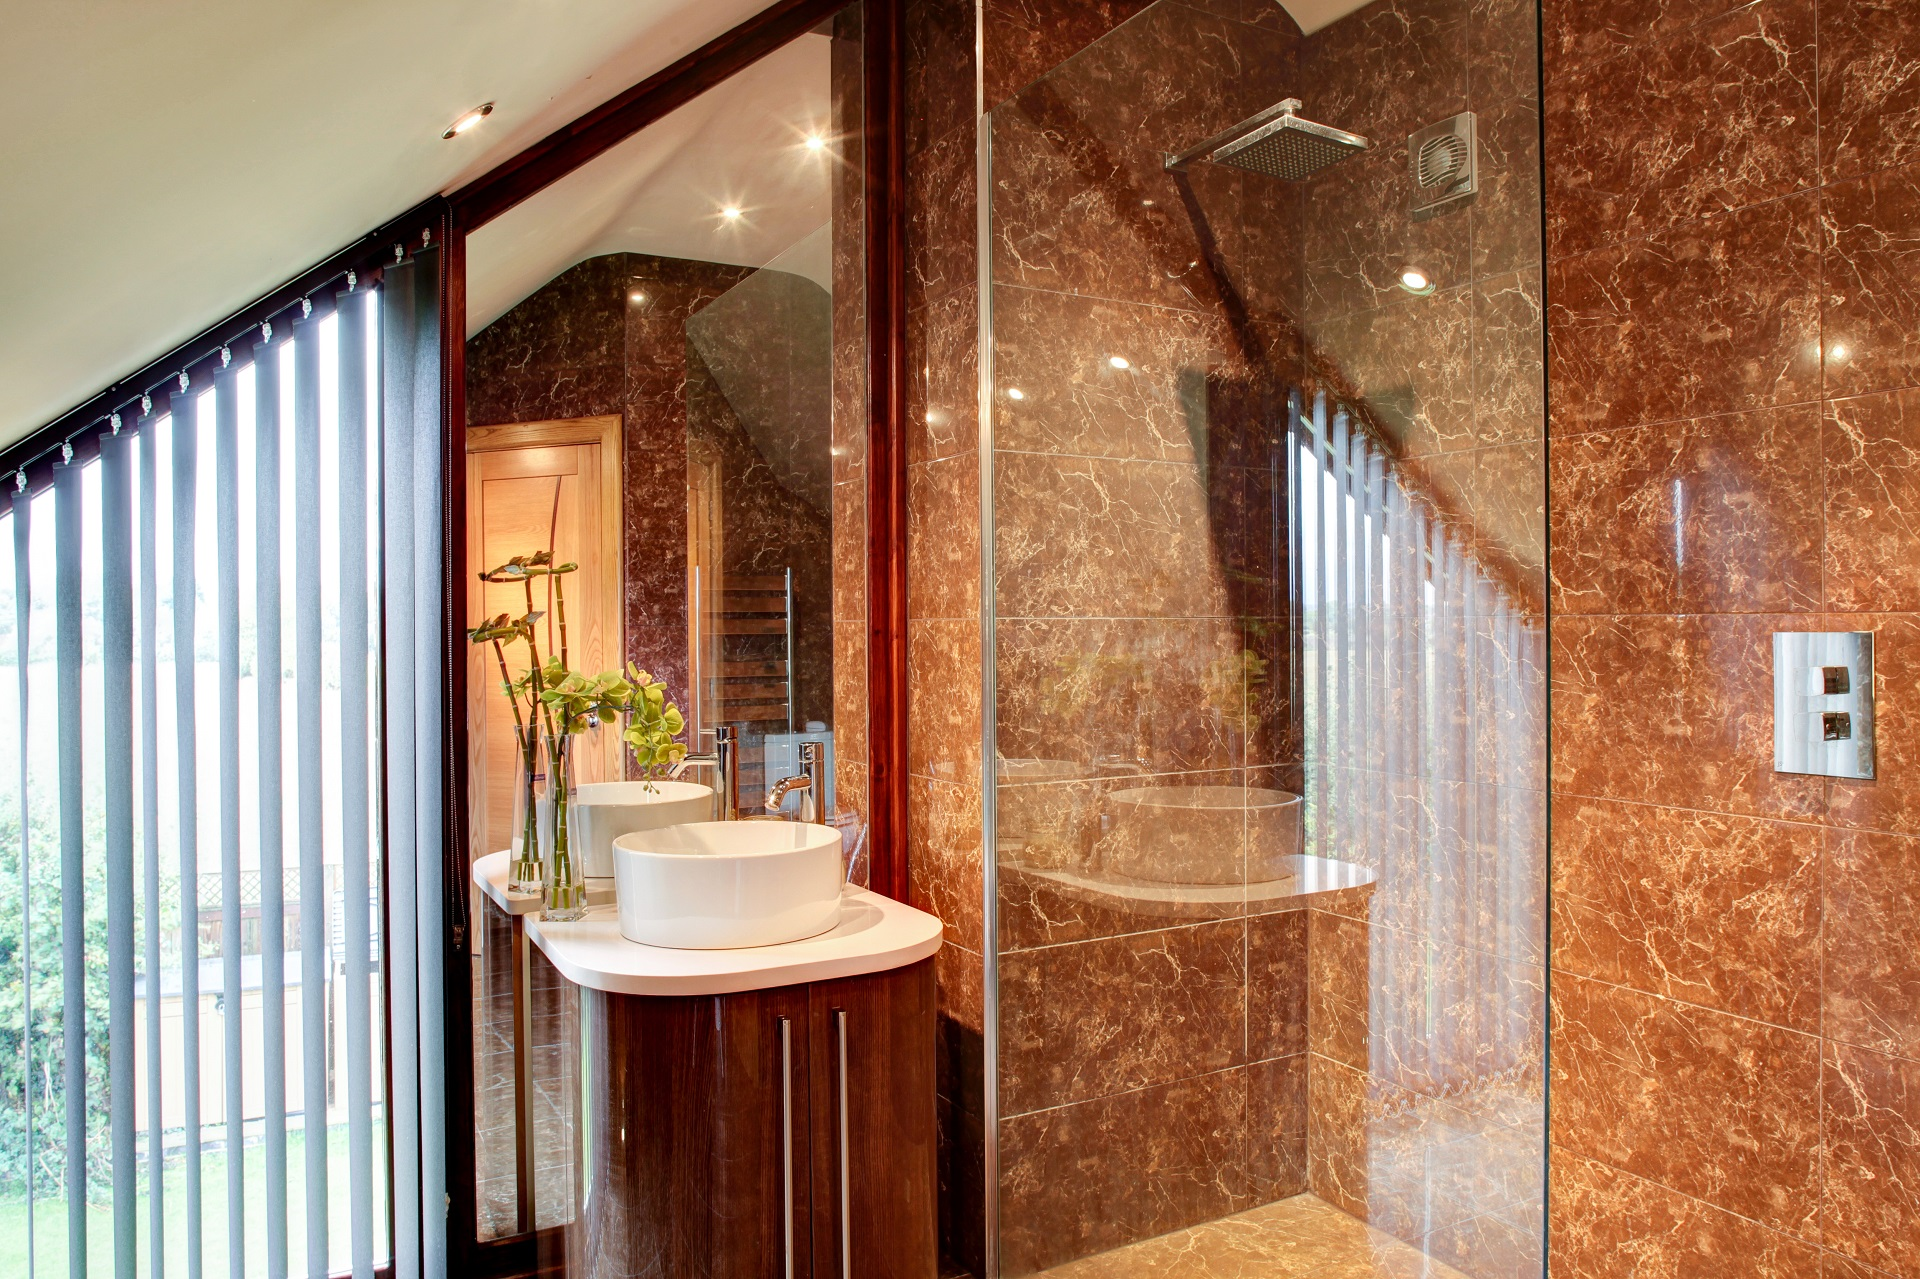 marble shower room, en suite, luxury interiors, fernhill nottingham